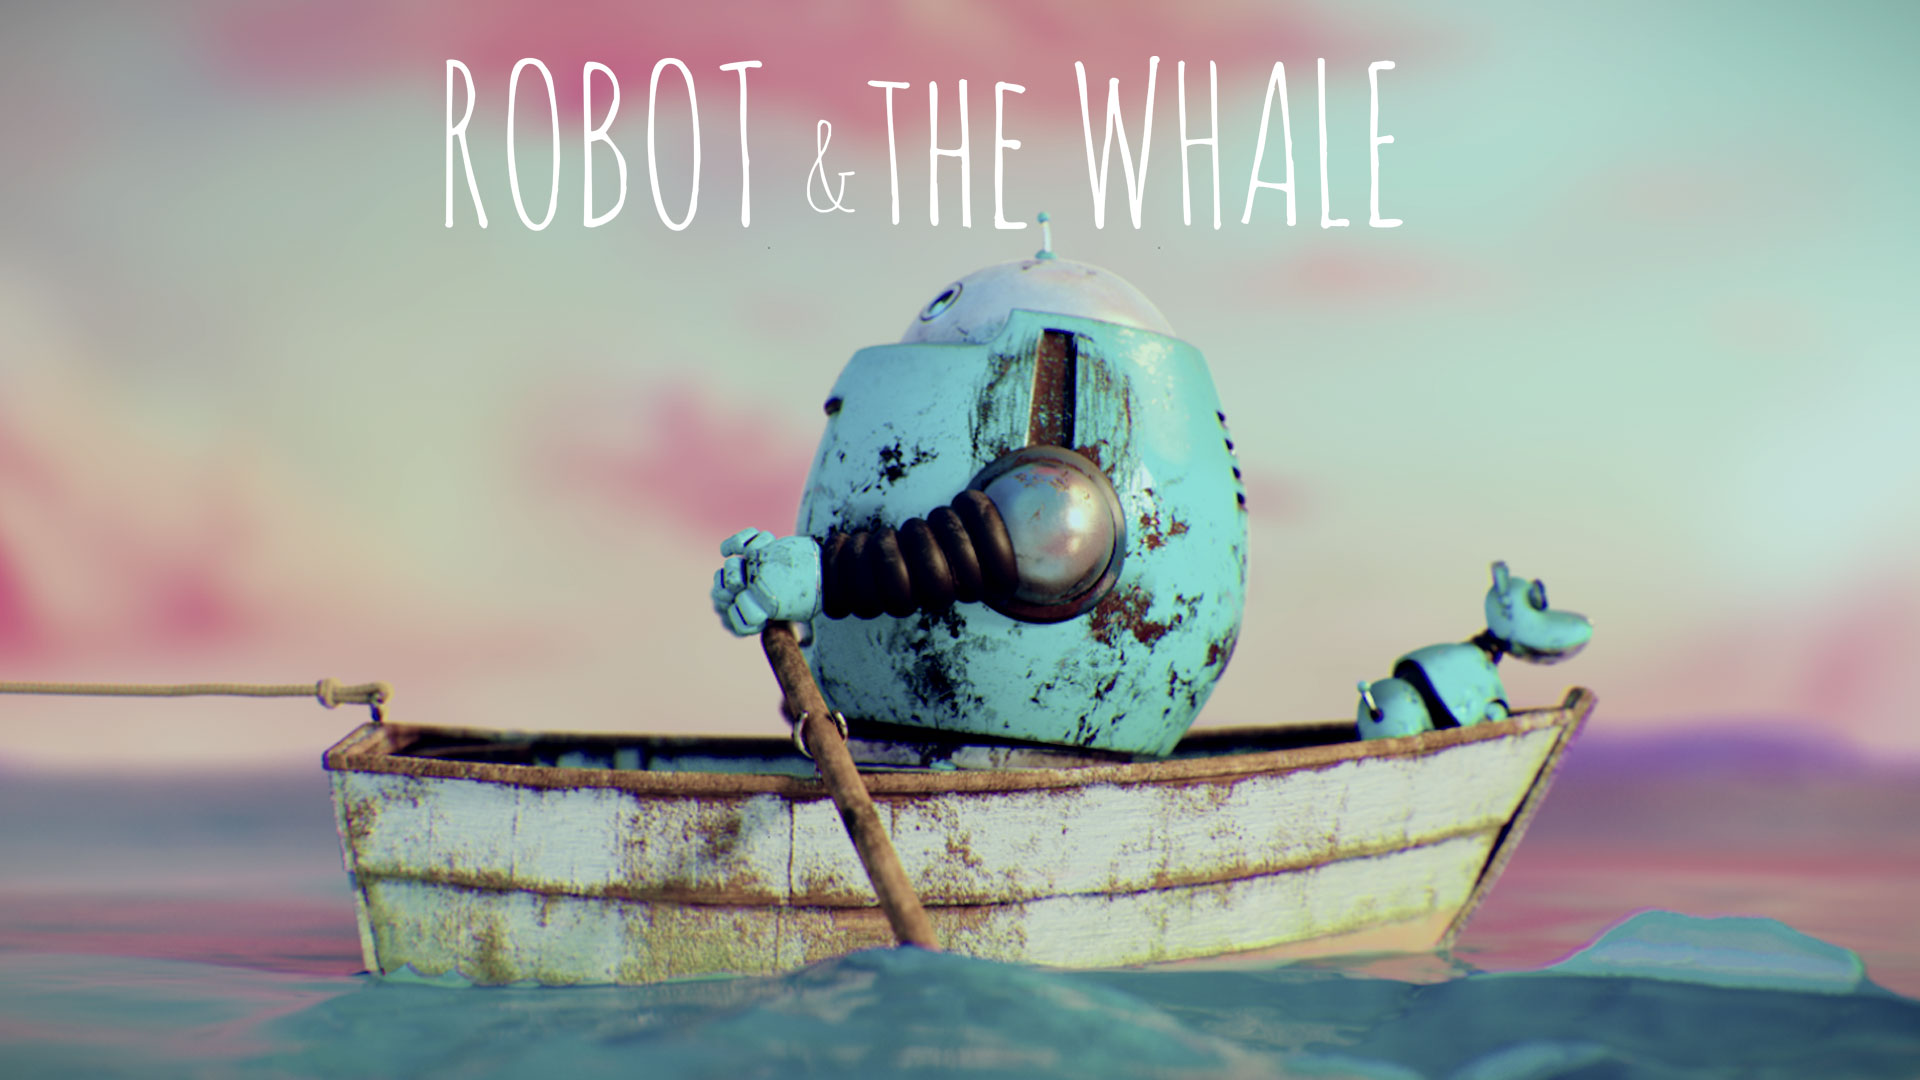 Robot & The Whale